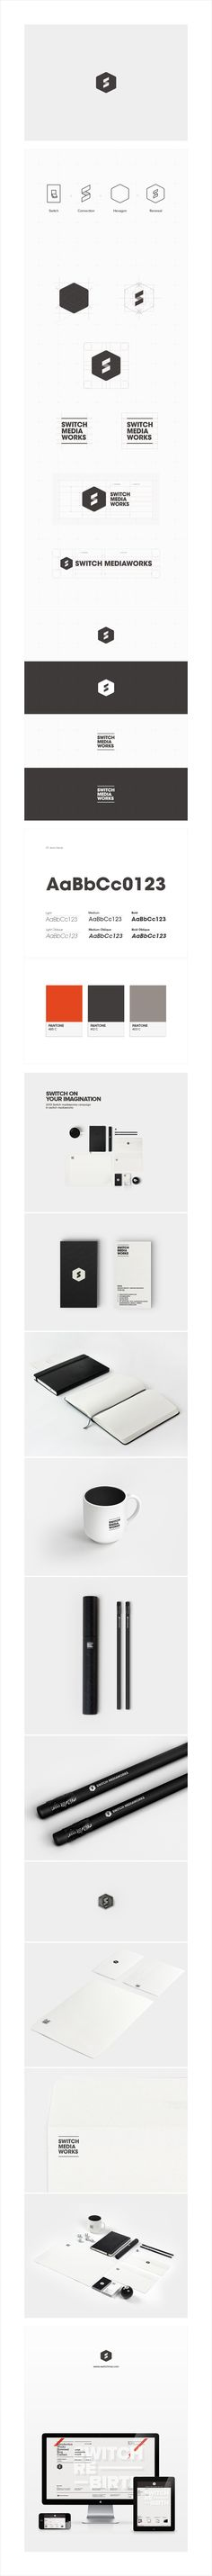 2013 brand renewal, switch mediaworks on Behance